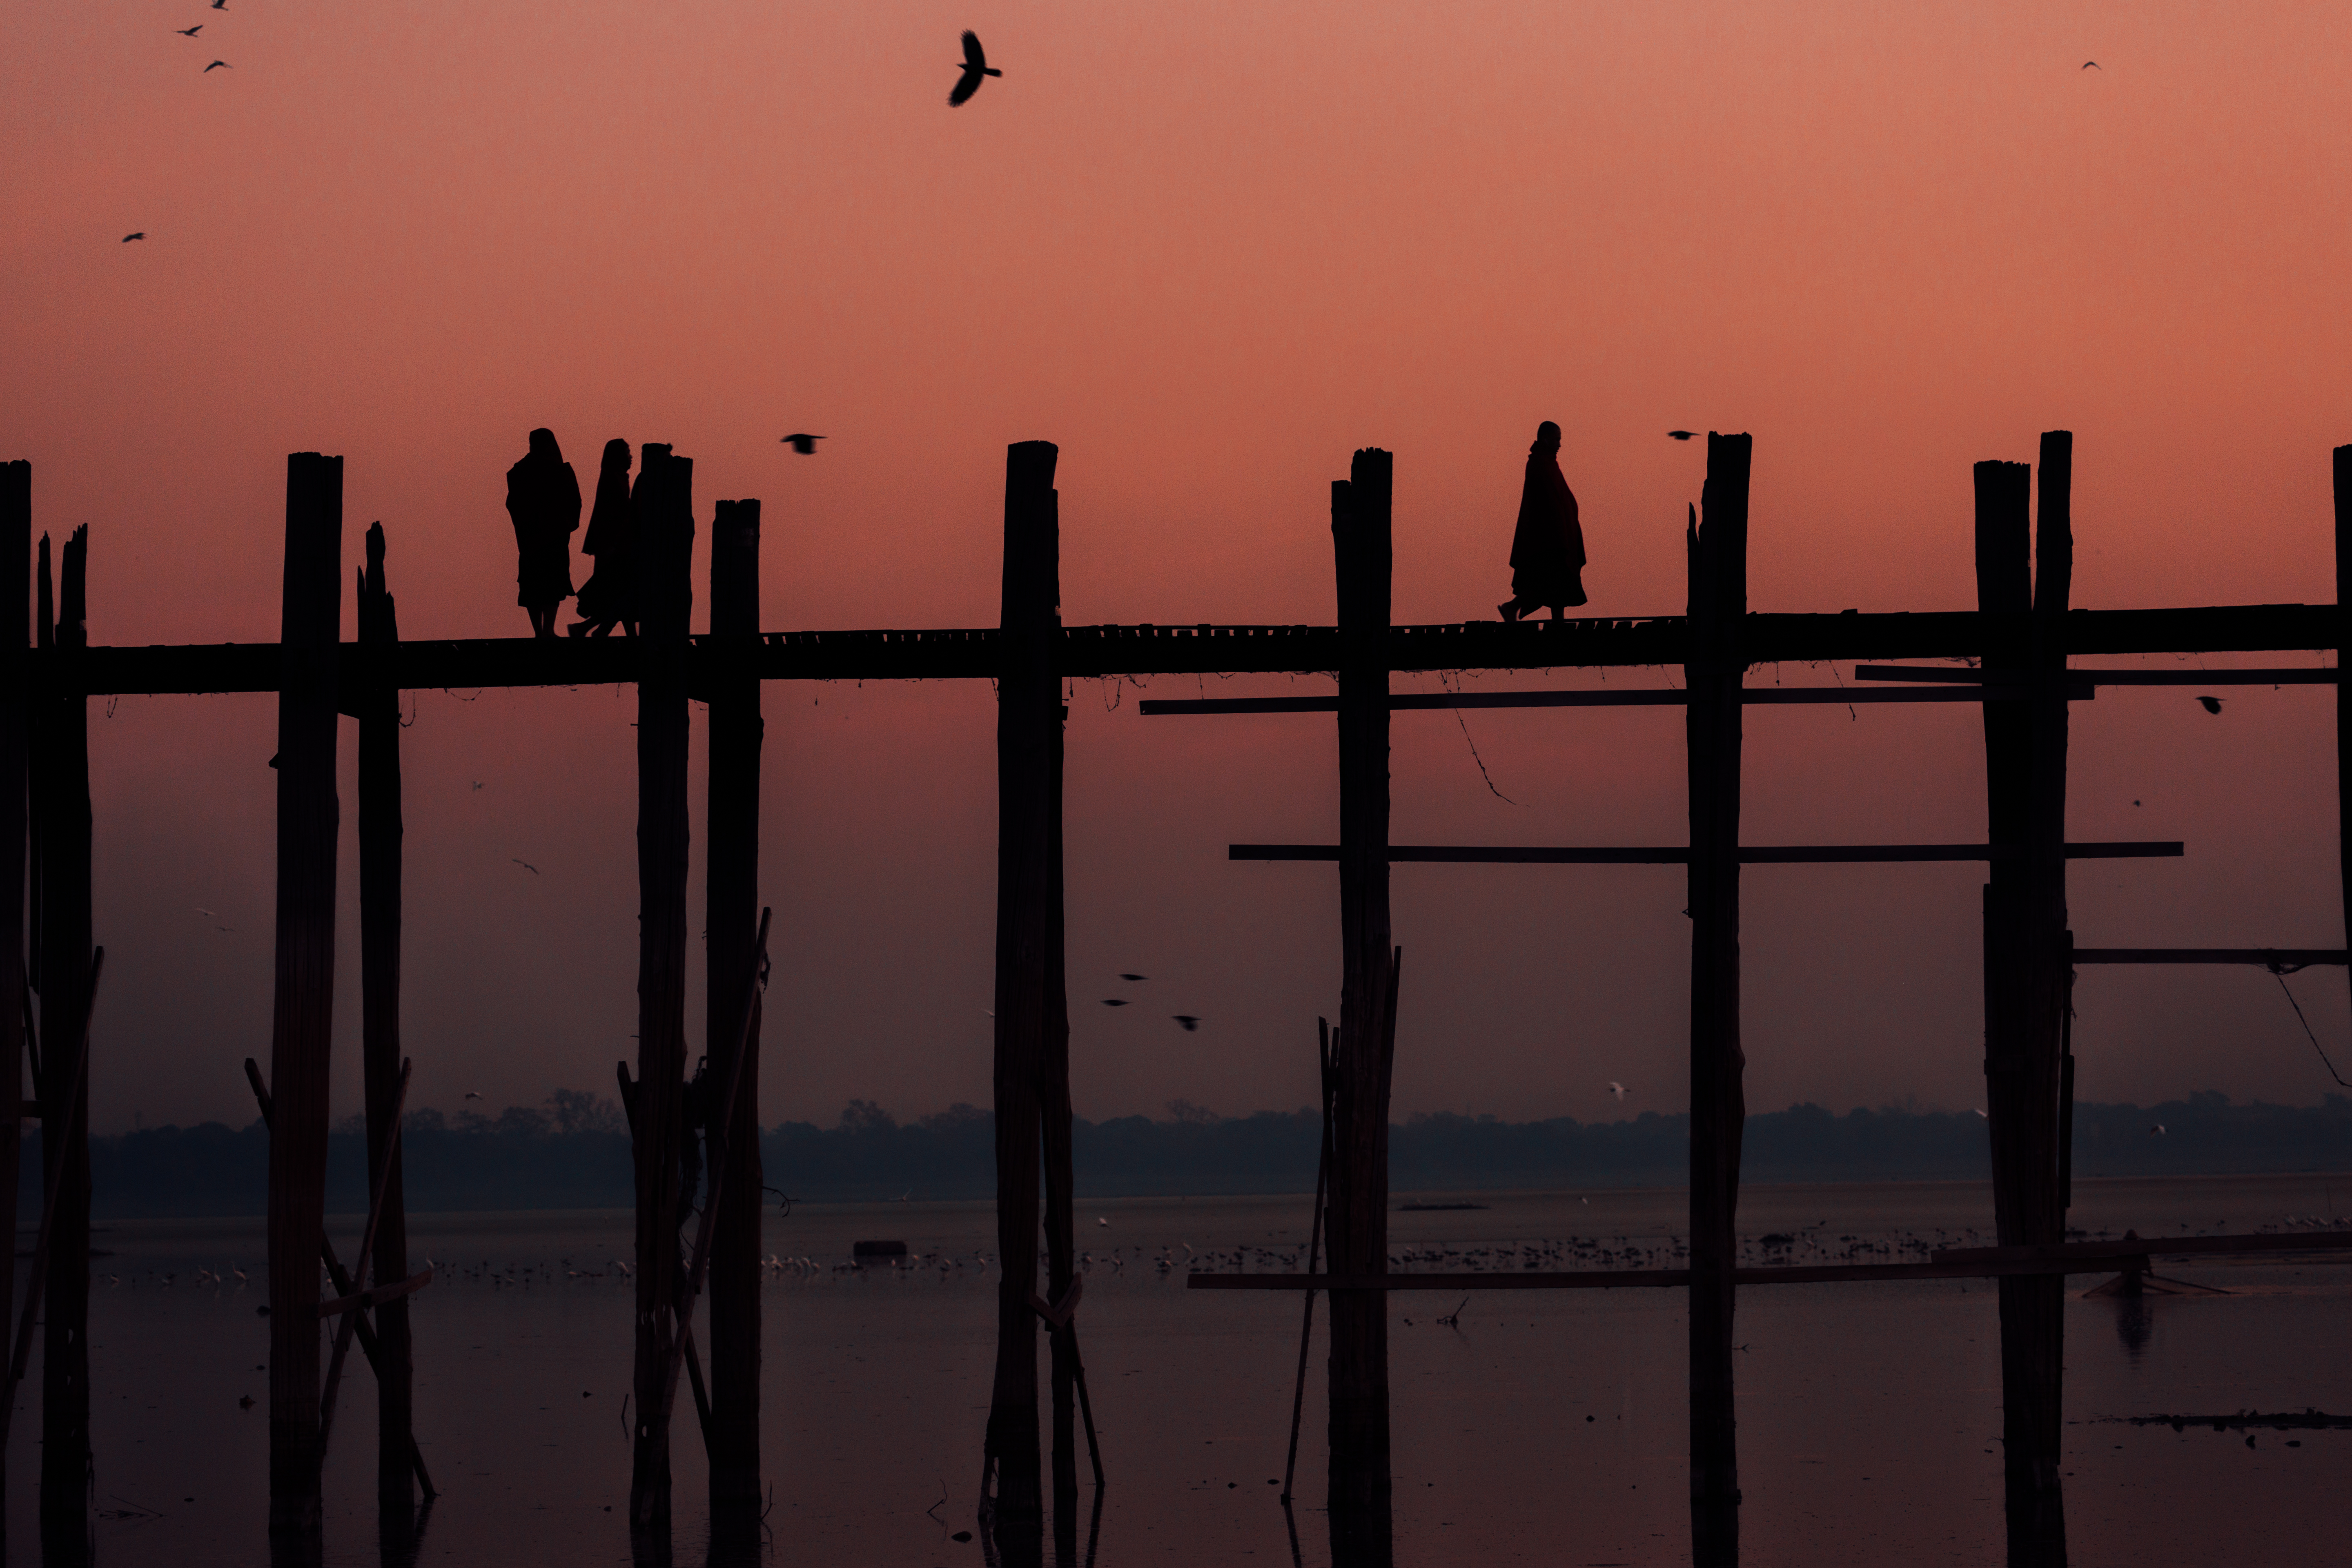 silhouette_of_people_standing_on_wooden_